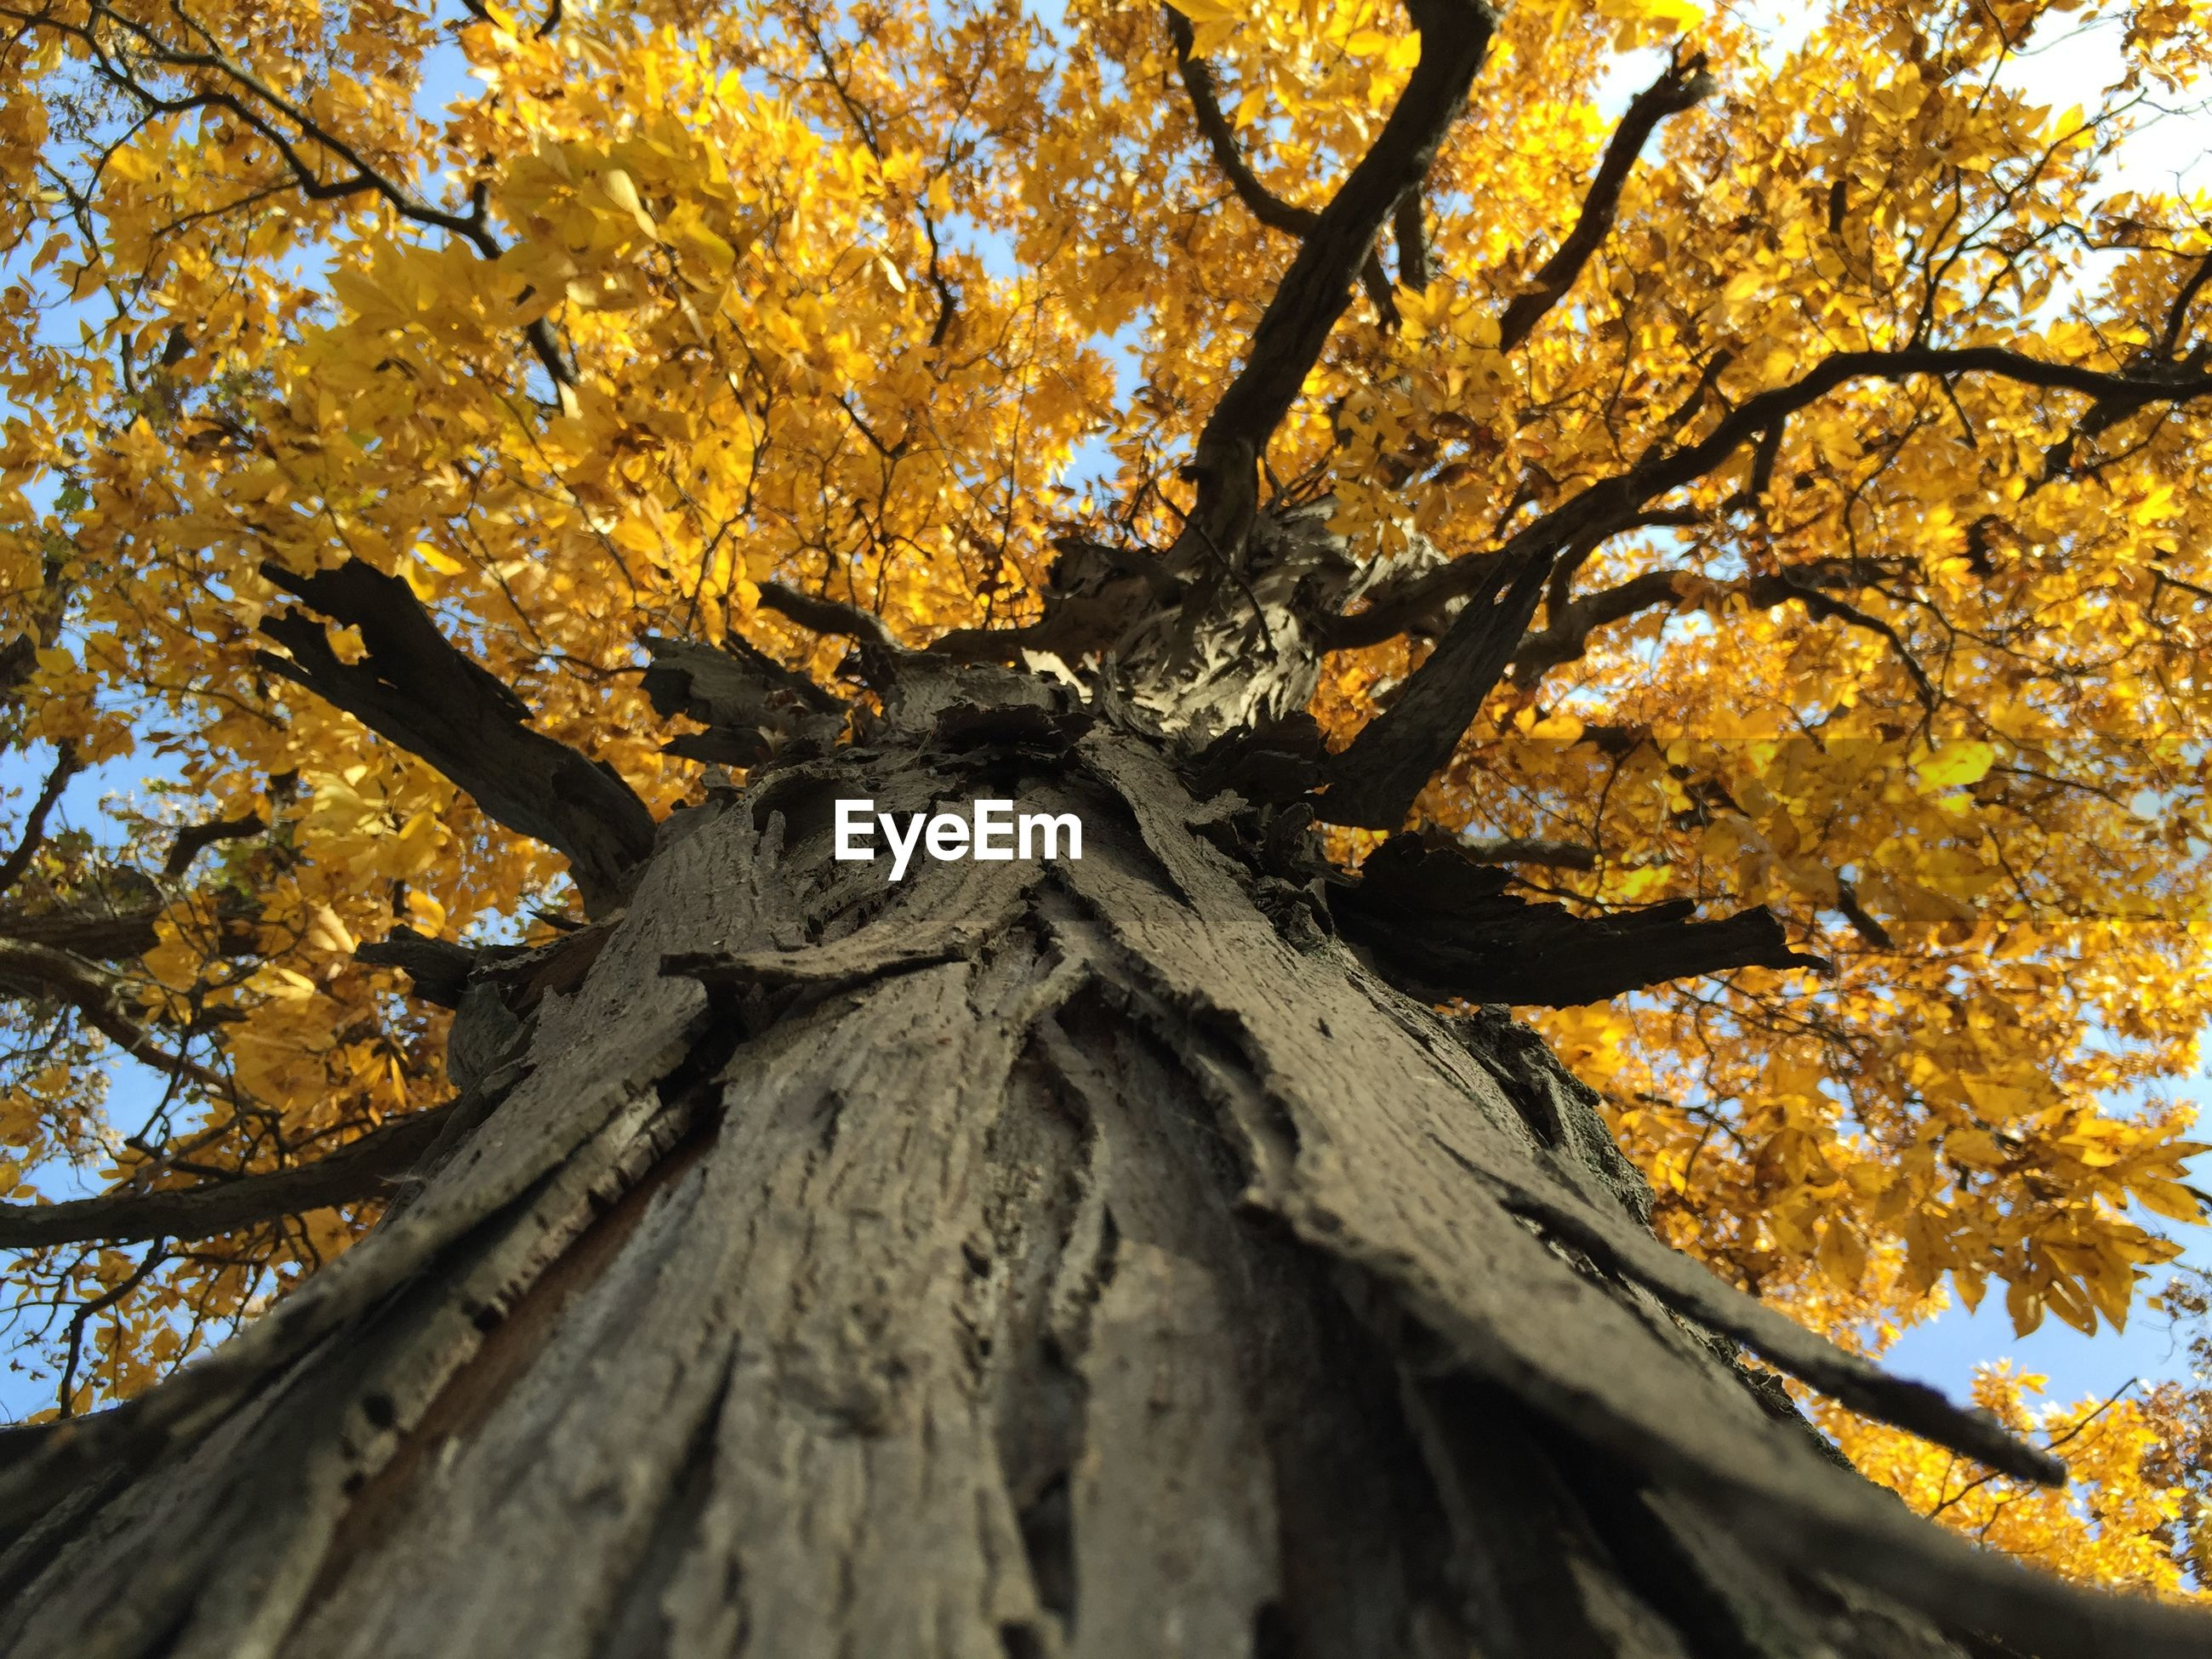 Low angle view of tree growing against sky during autumn